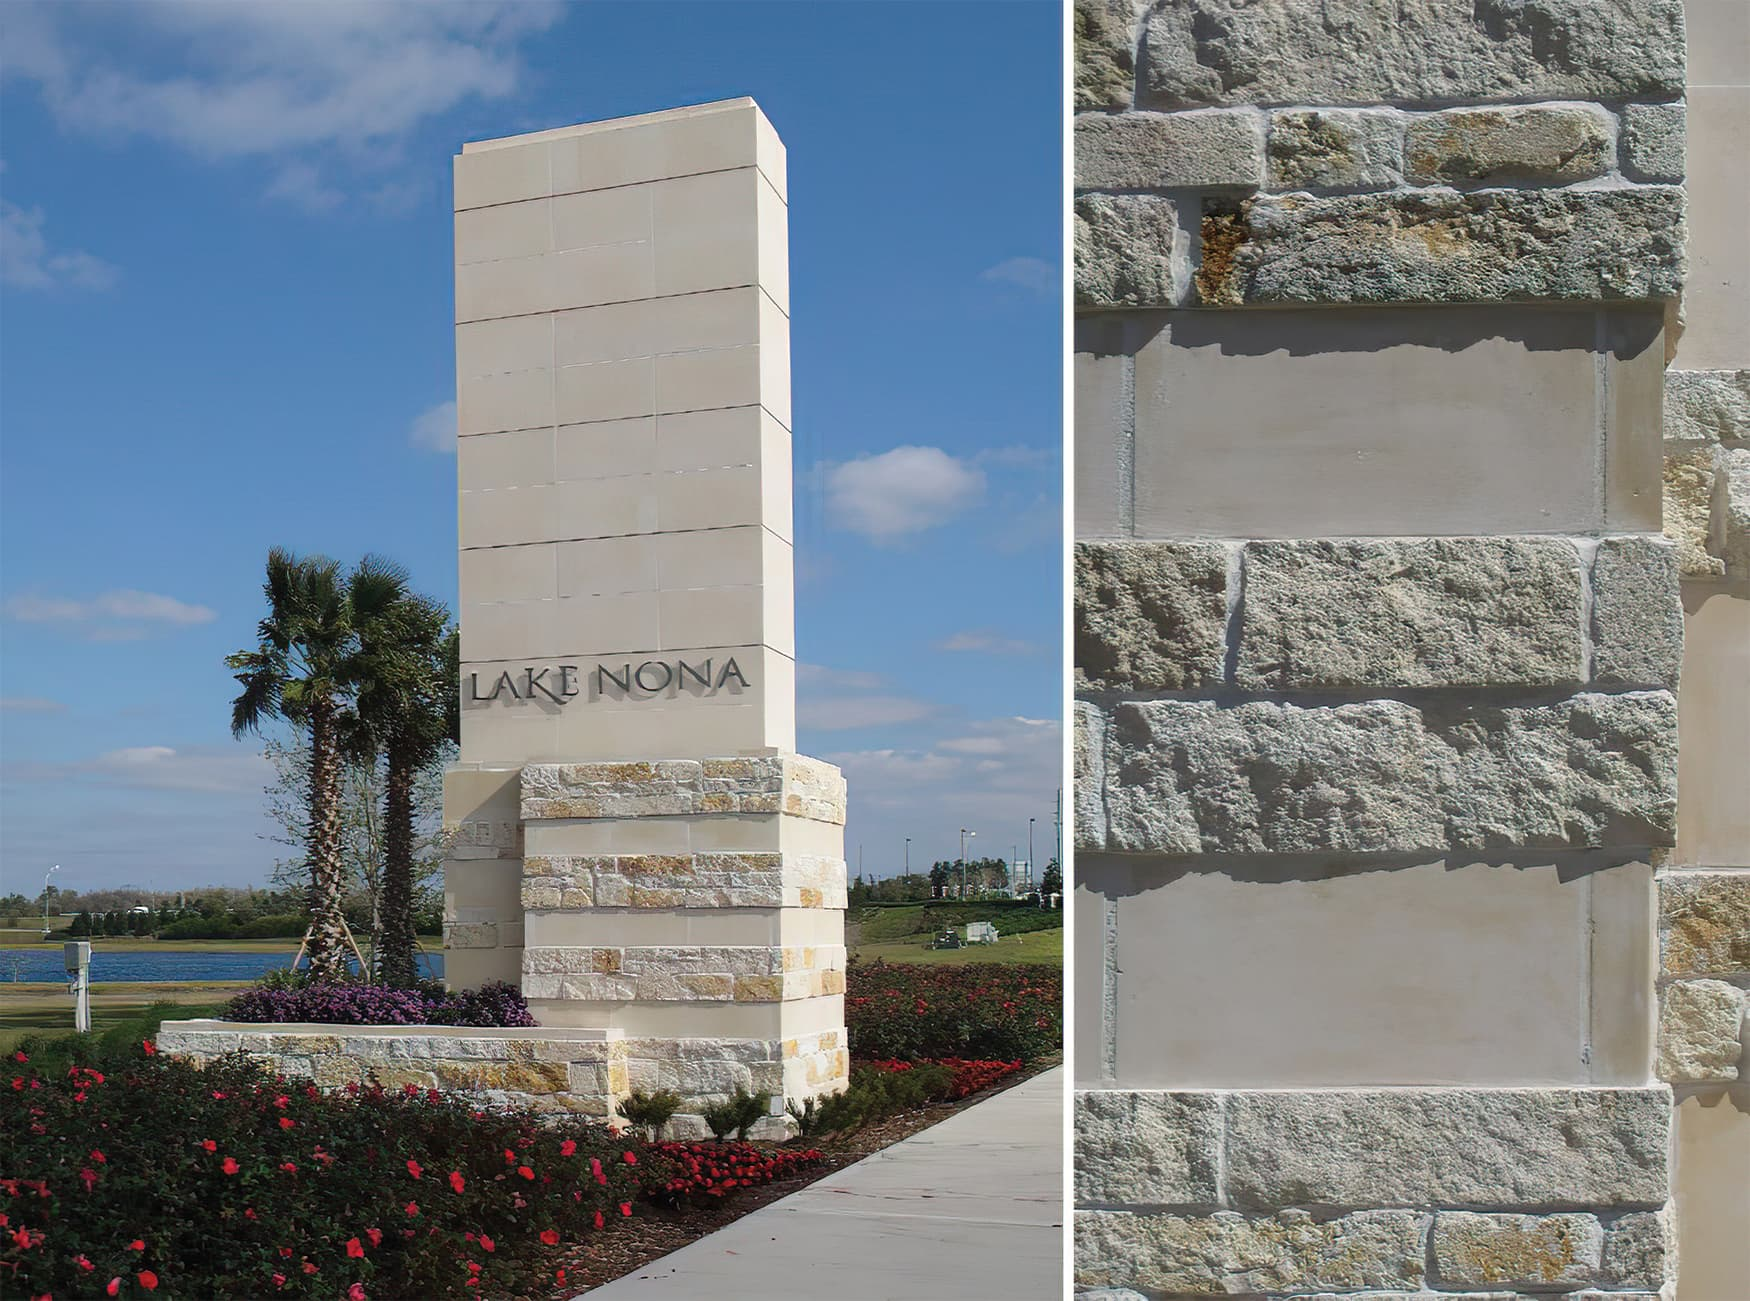 Lake Nona, a residential community outside Orlando, Florida. Project Identity Monument.